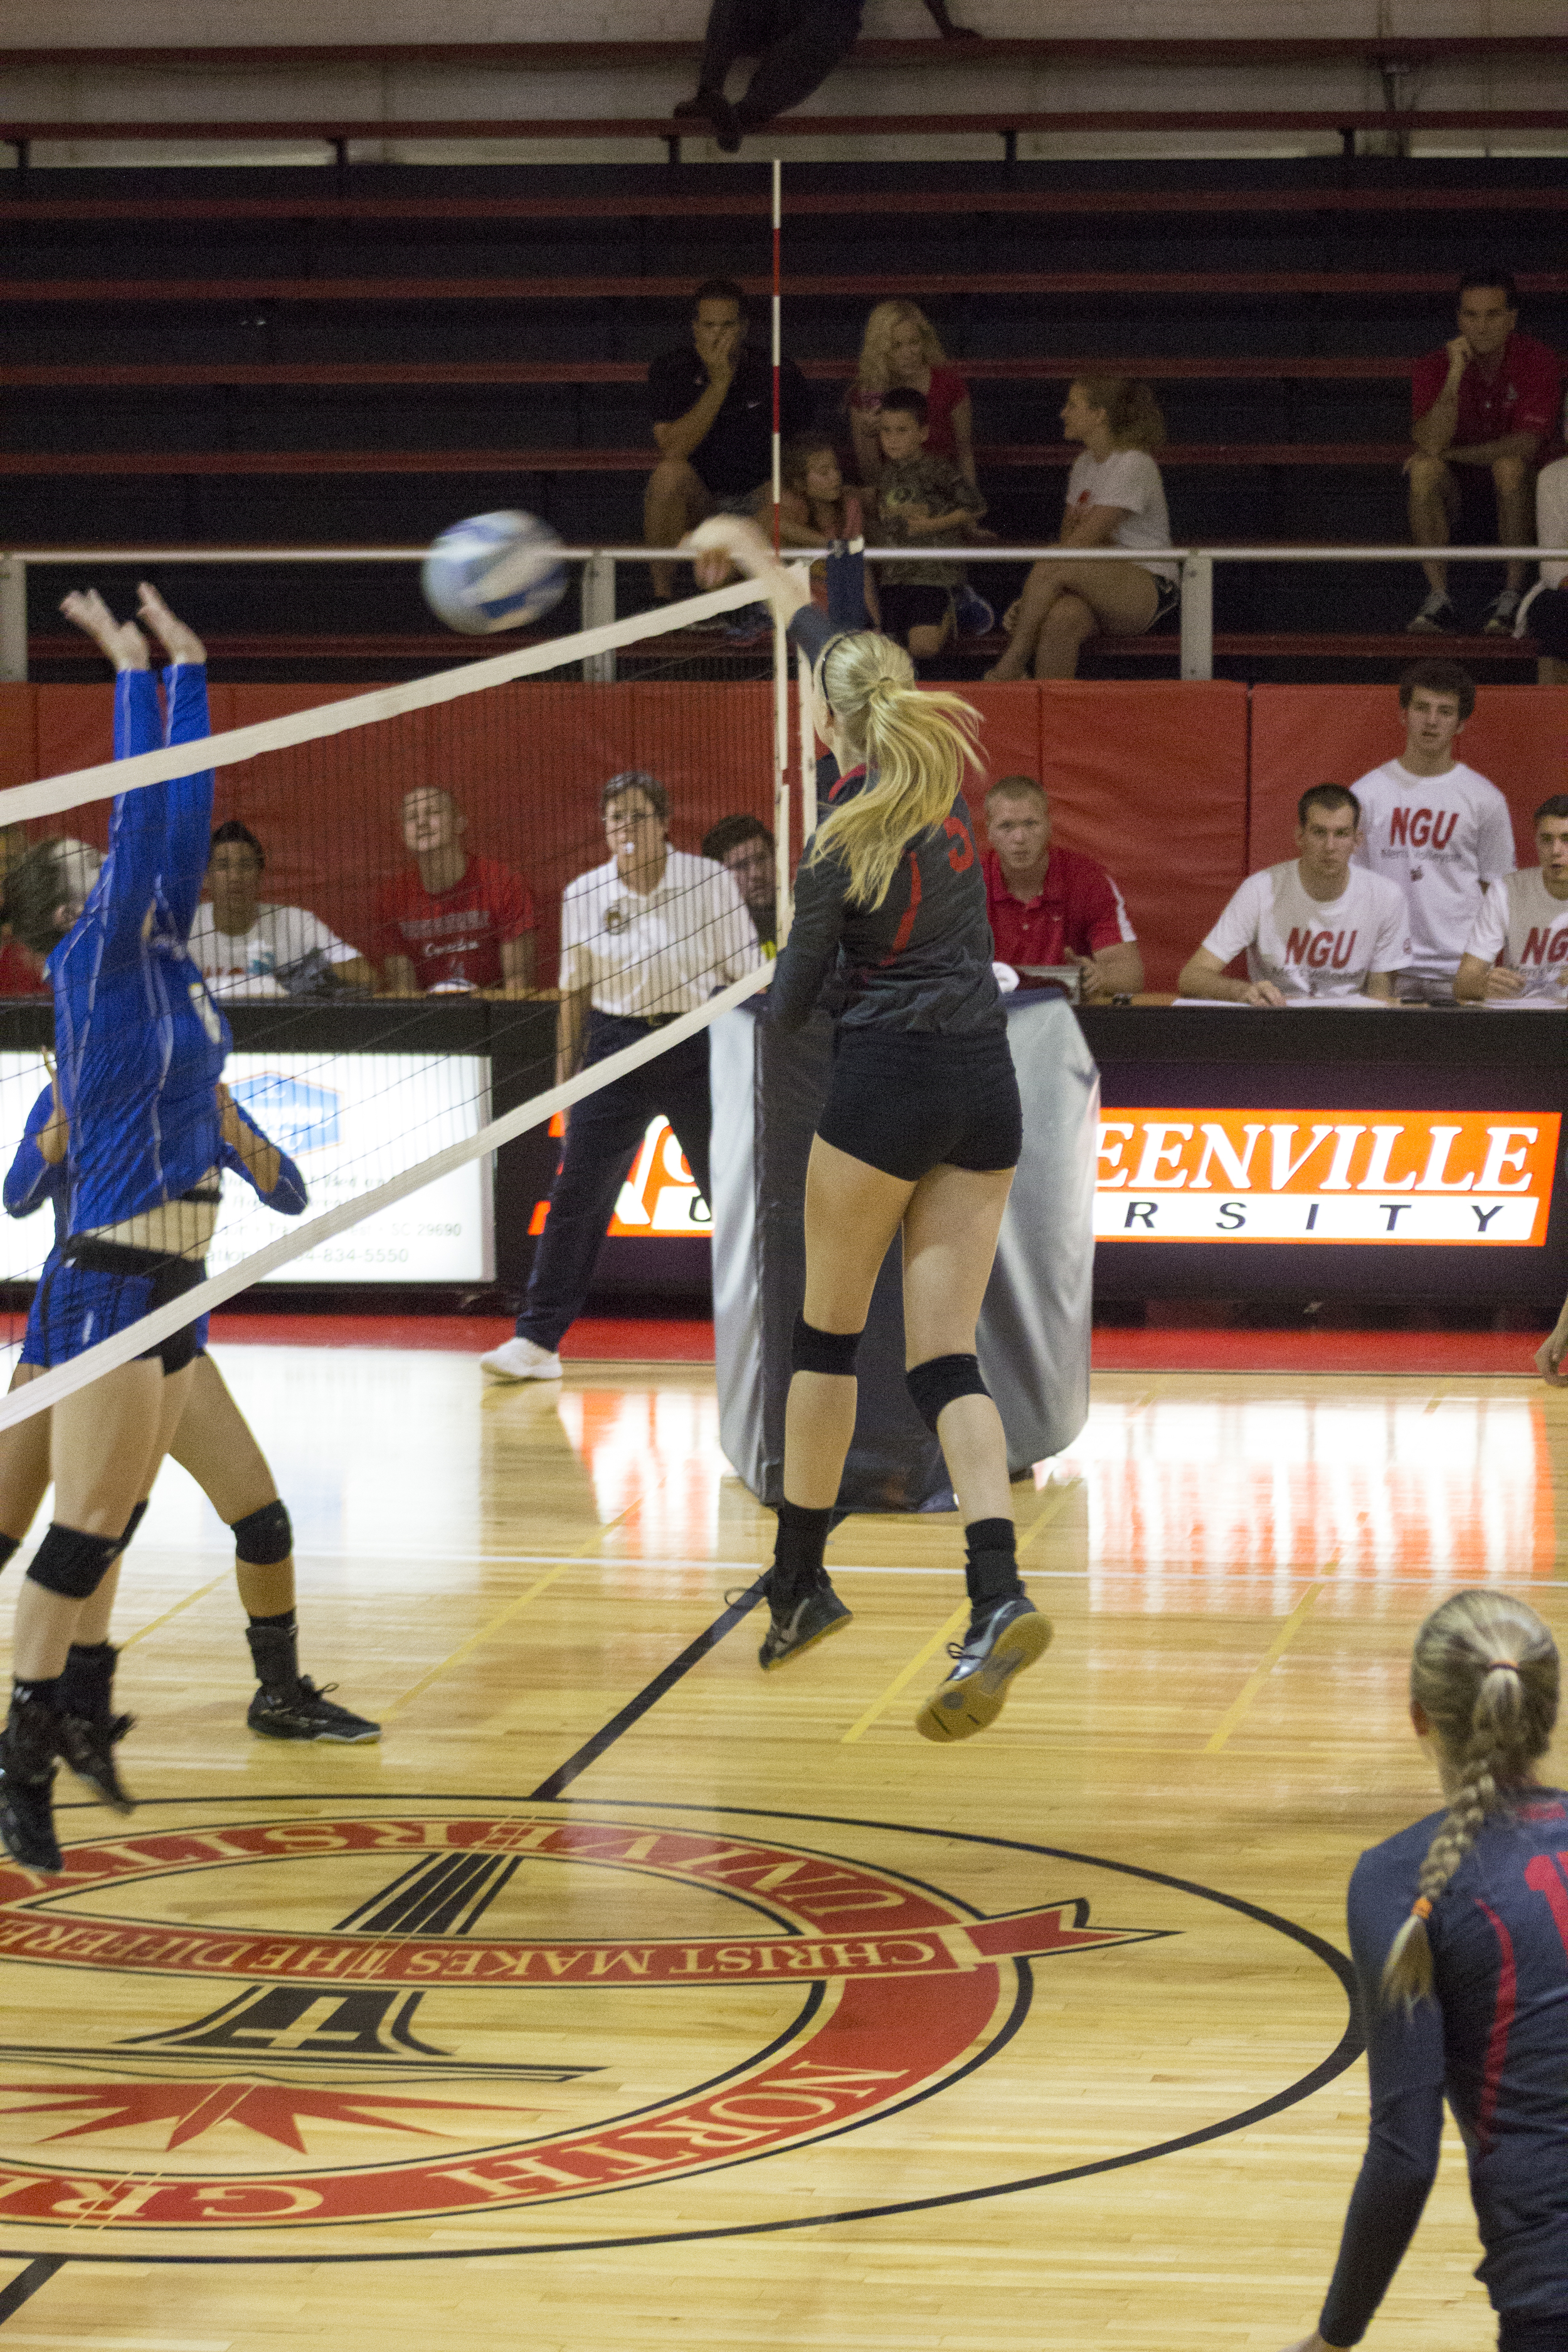 Junior Taylor Dupes returns with a spike on the opponent's side.